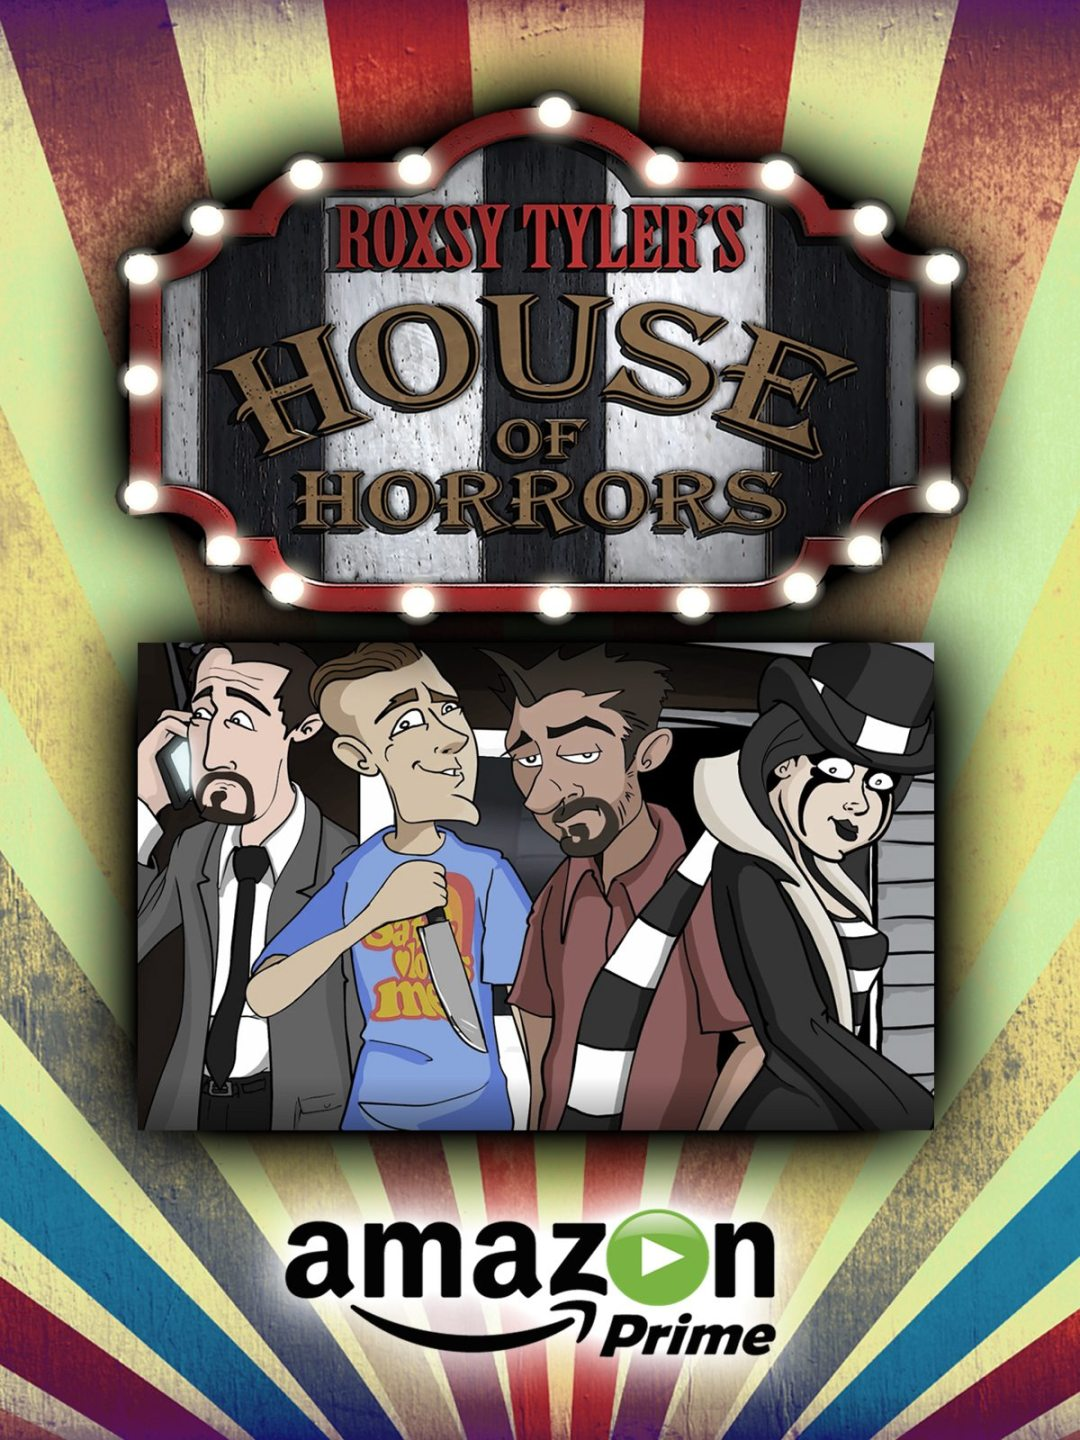 The New TV Series 'Roxsy Tyler's House of Horrors' Premieres on Amazon Prime